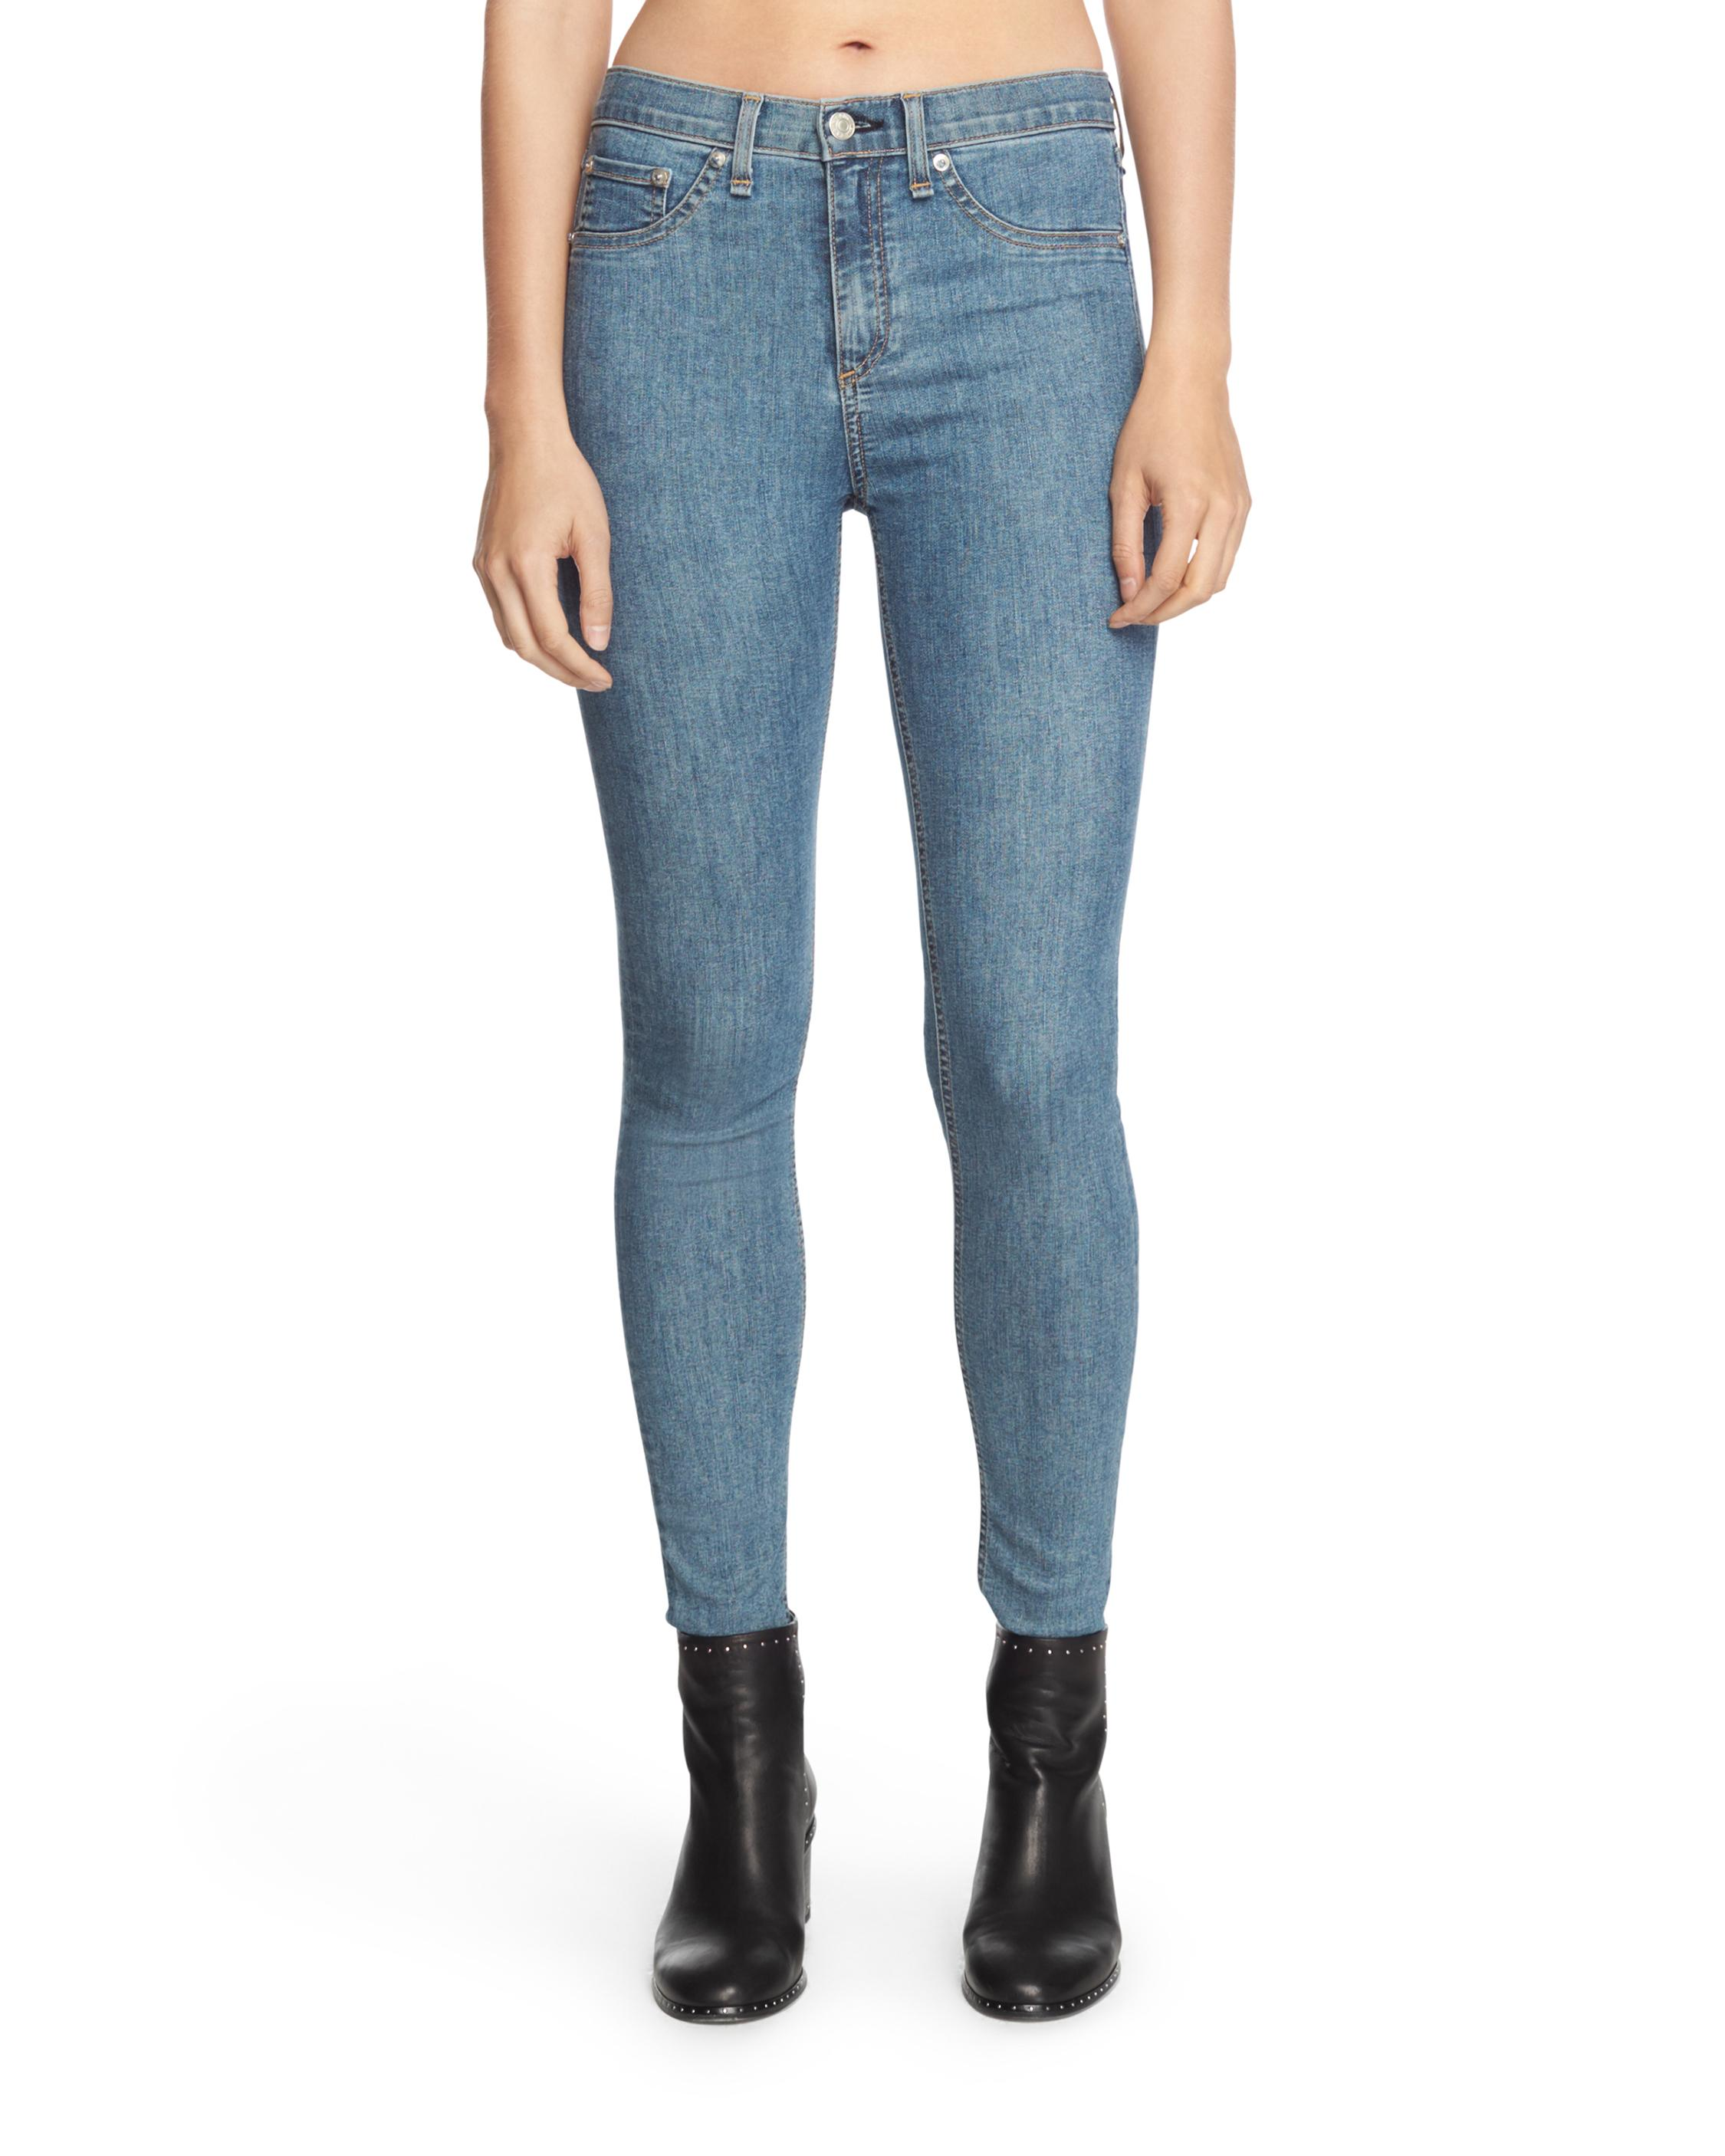 Find Great For Sale high rise skinny jeans - Blue Rag & Bone How Much Websites Sale Pay With Paypal Discount Lowest Price Bee57X